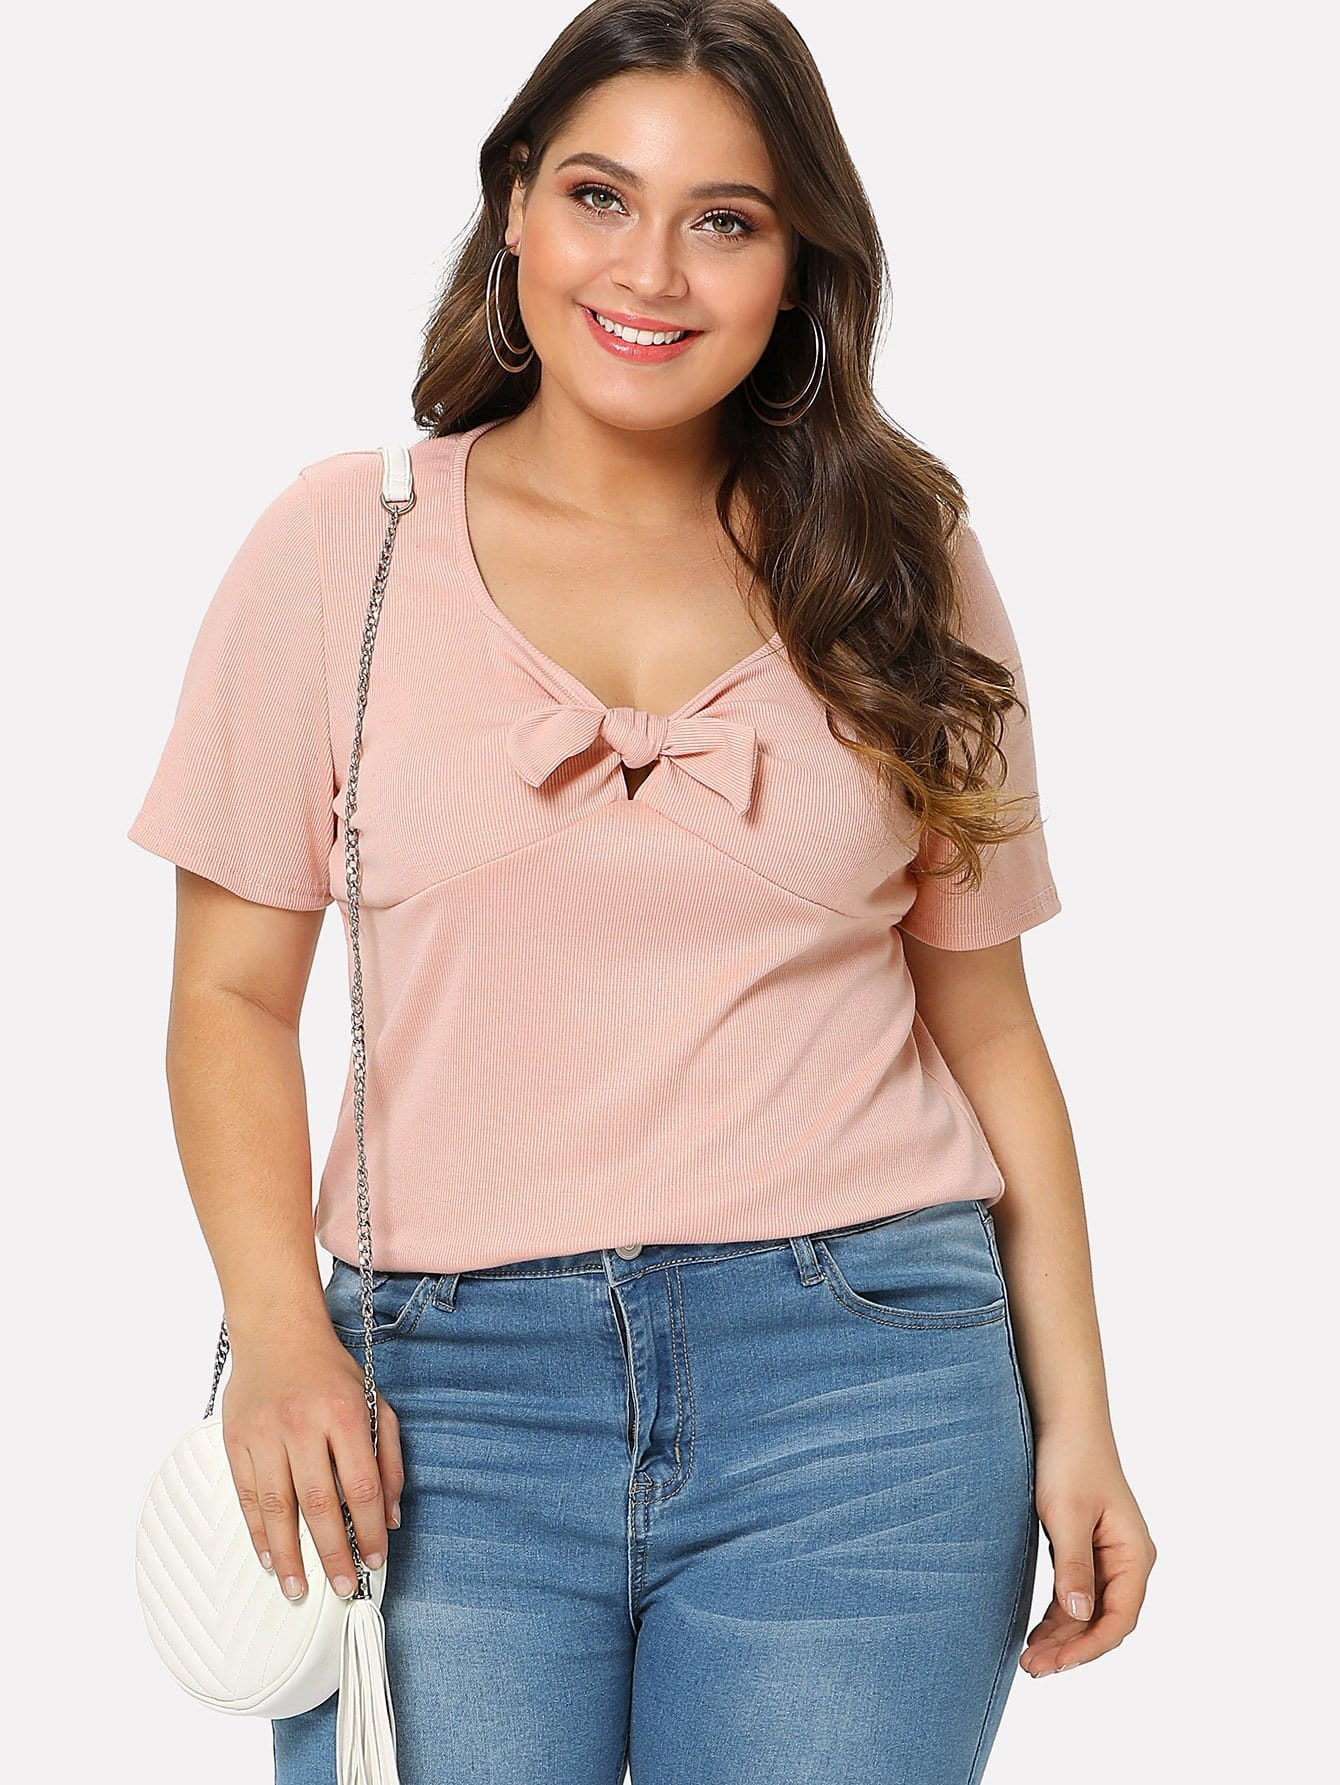 Knot Front Cut Out Ribbed Tee knot front cut out ribbed tee